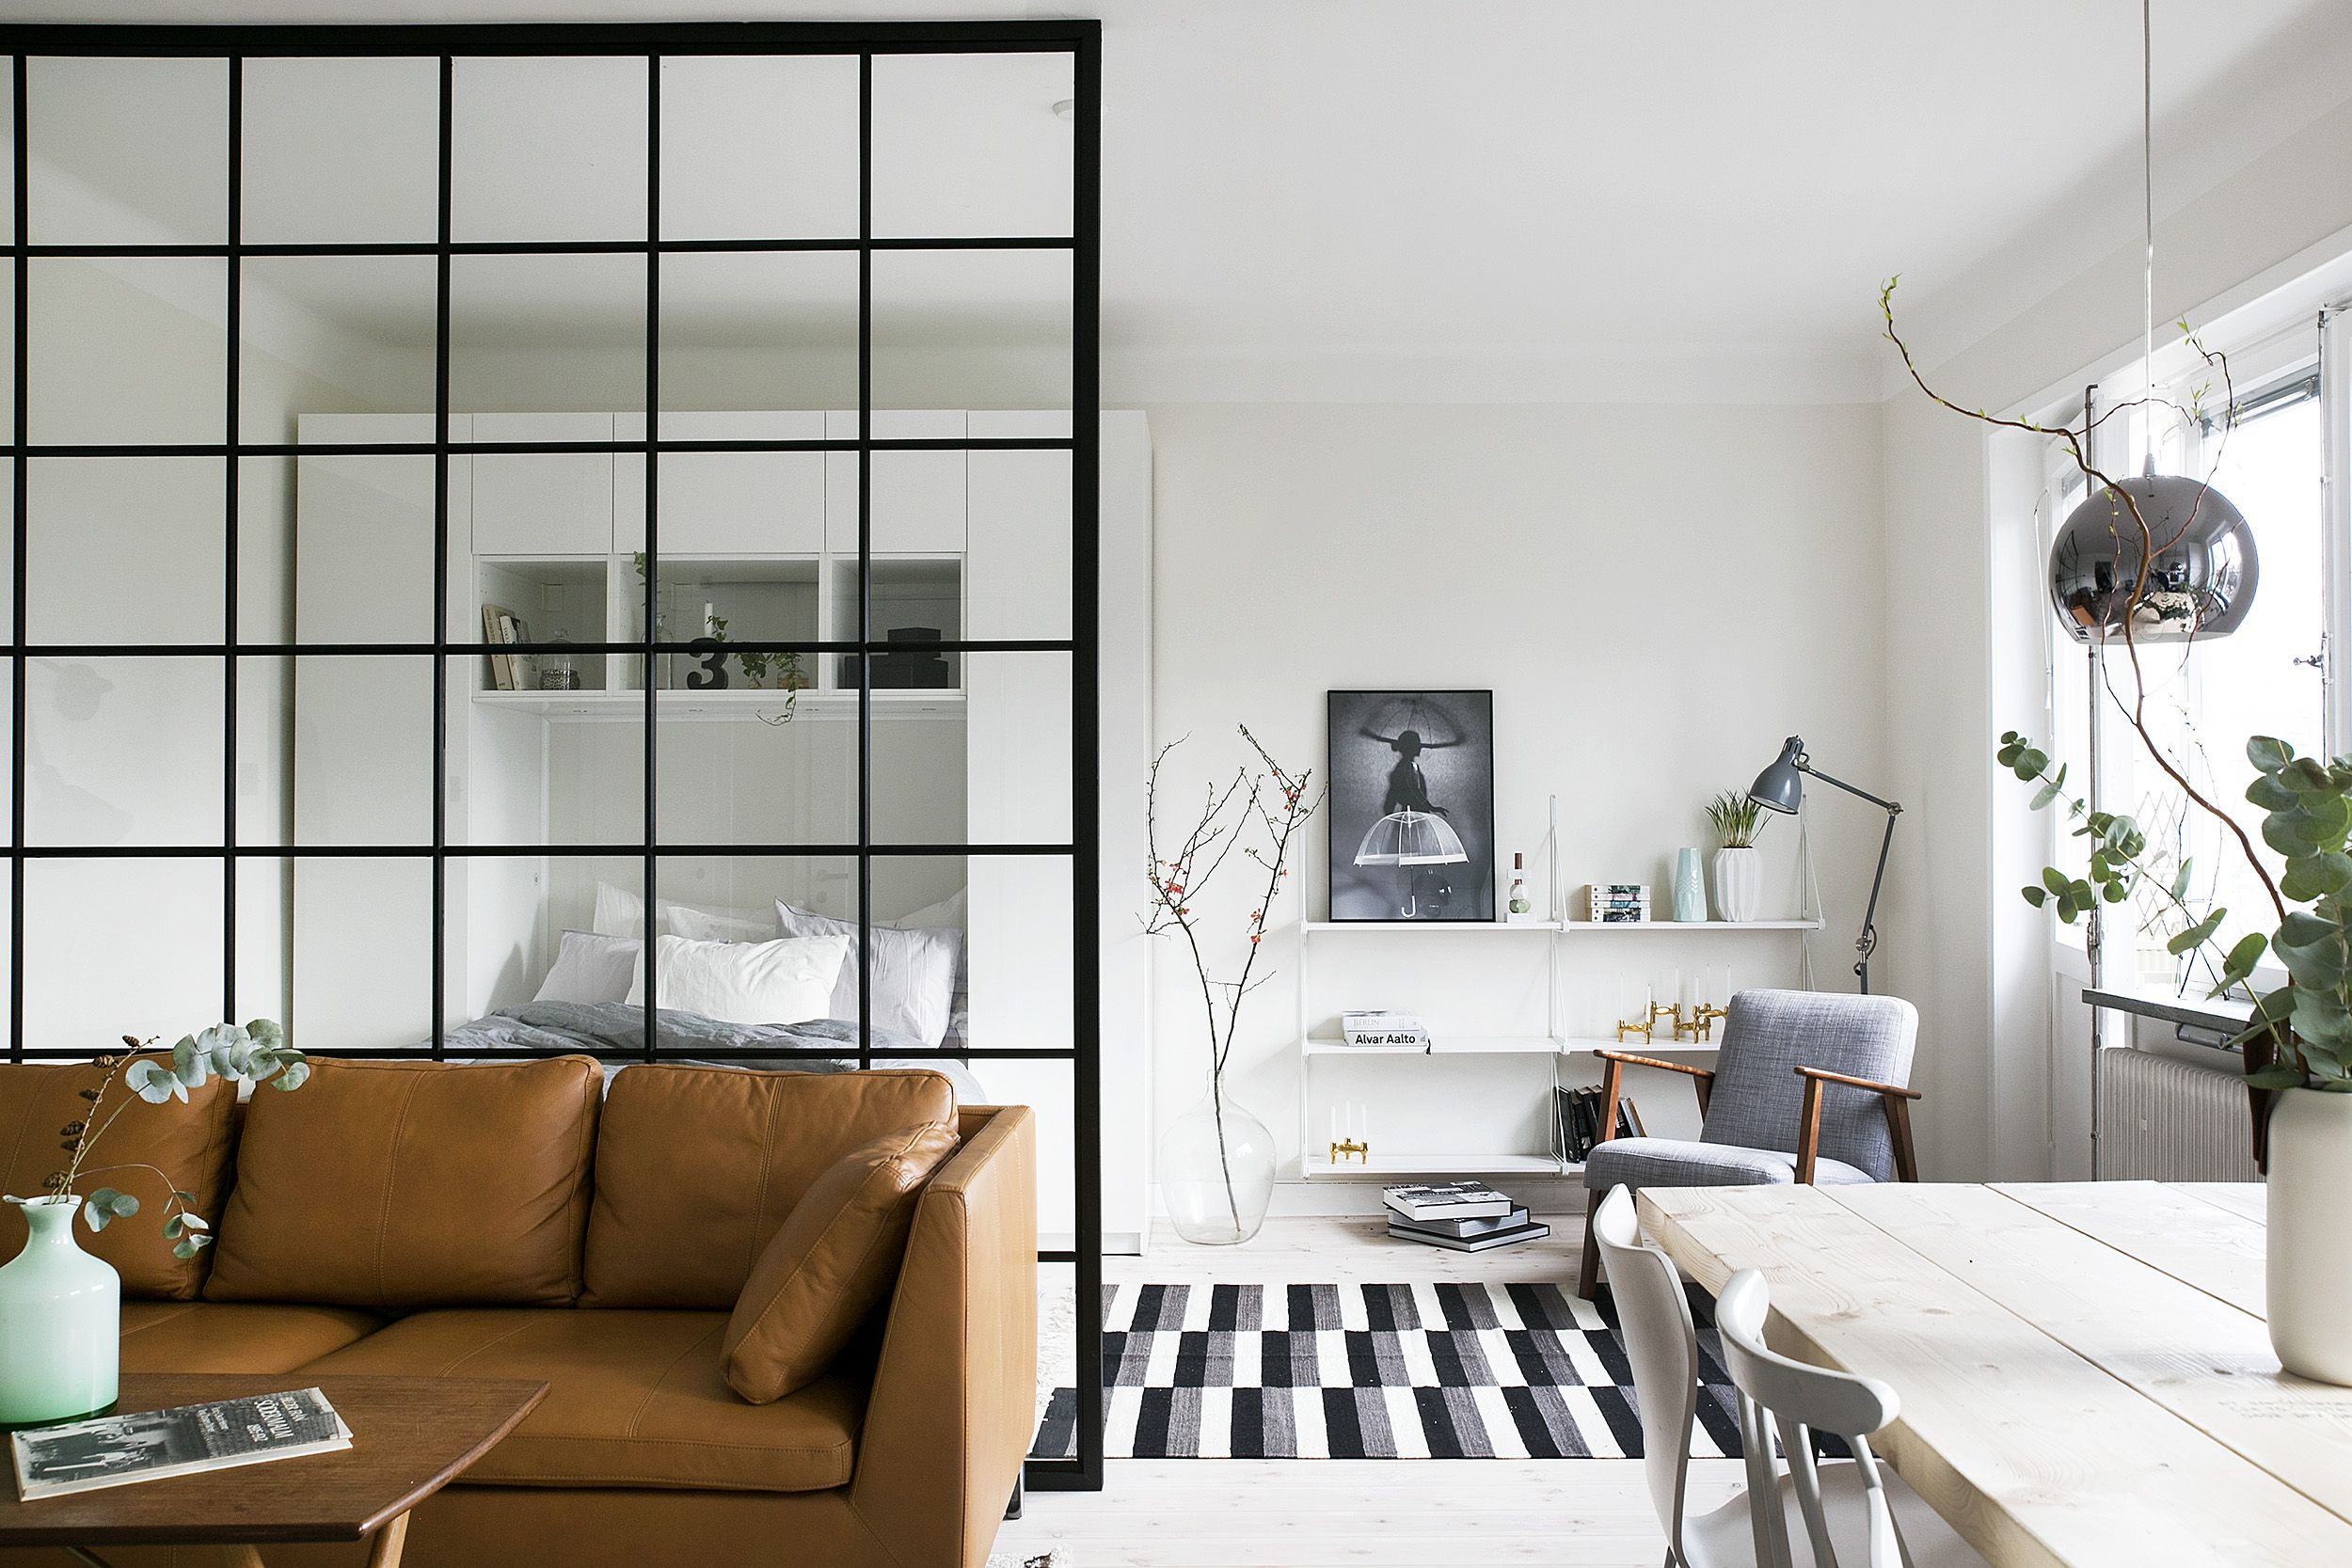 How to make the most of the space in a small house